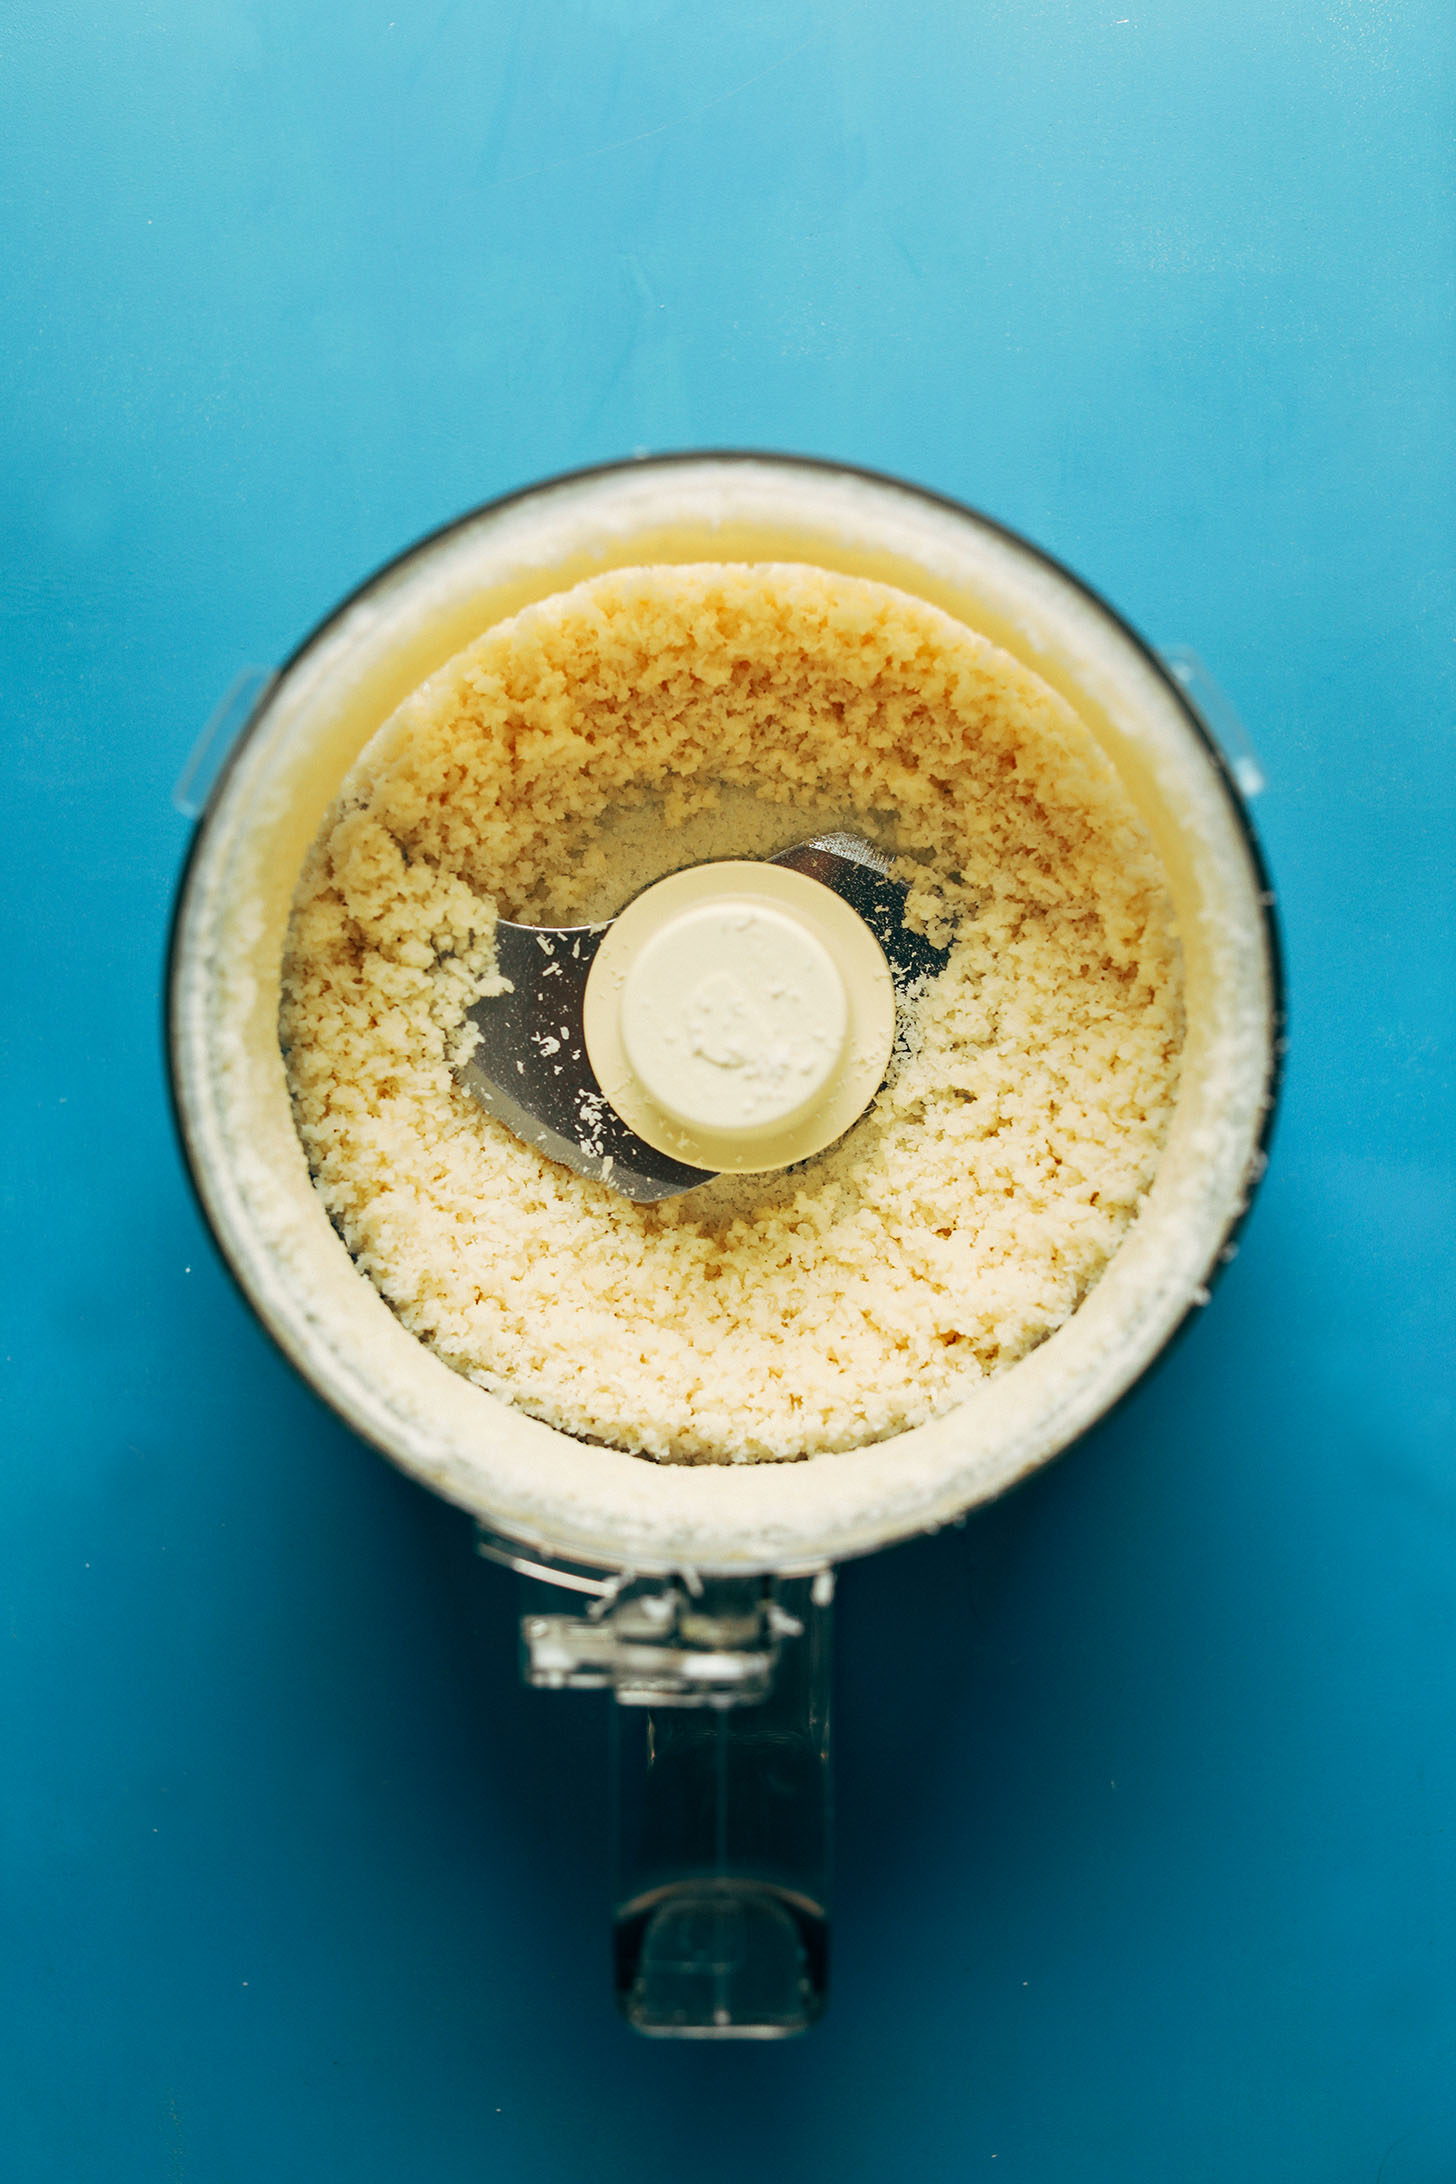 Food processor with a batch of partially-made coconut butter